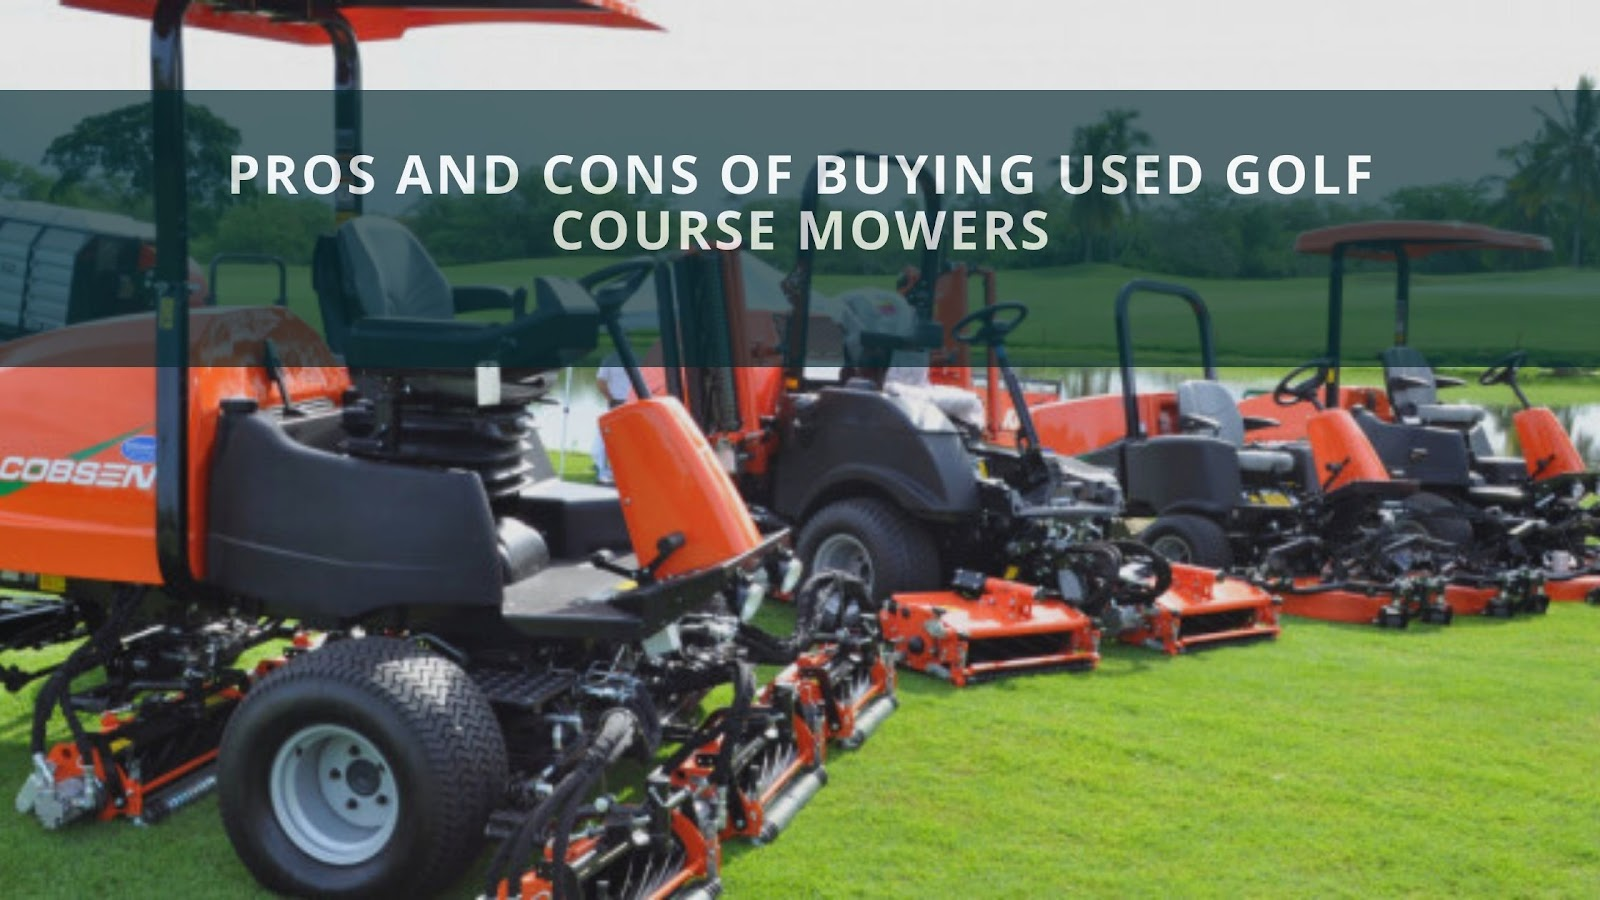 Pros And Cons Of Buying Used Golf Course Mowers